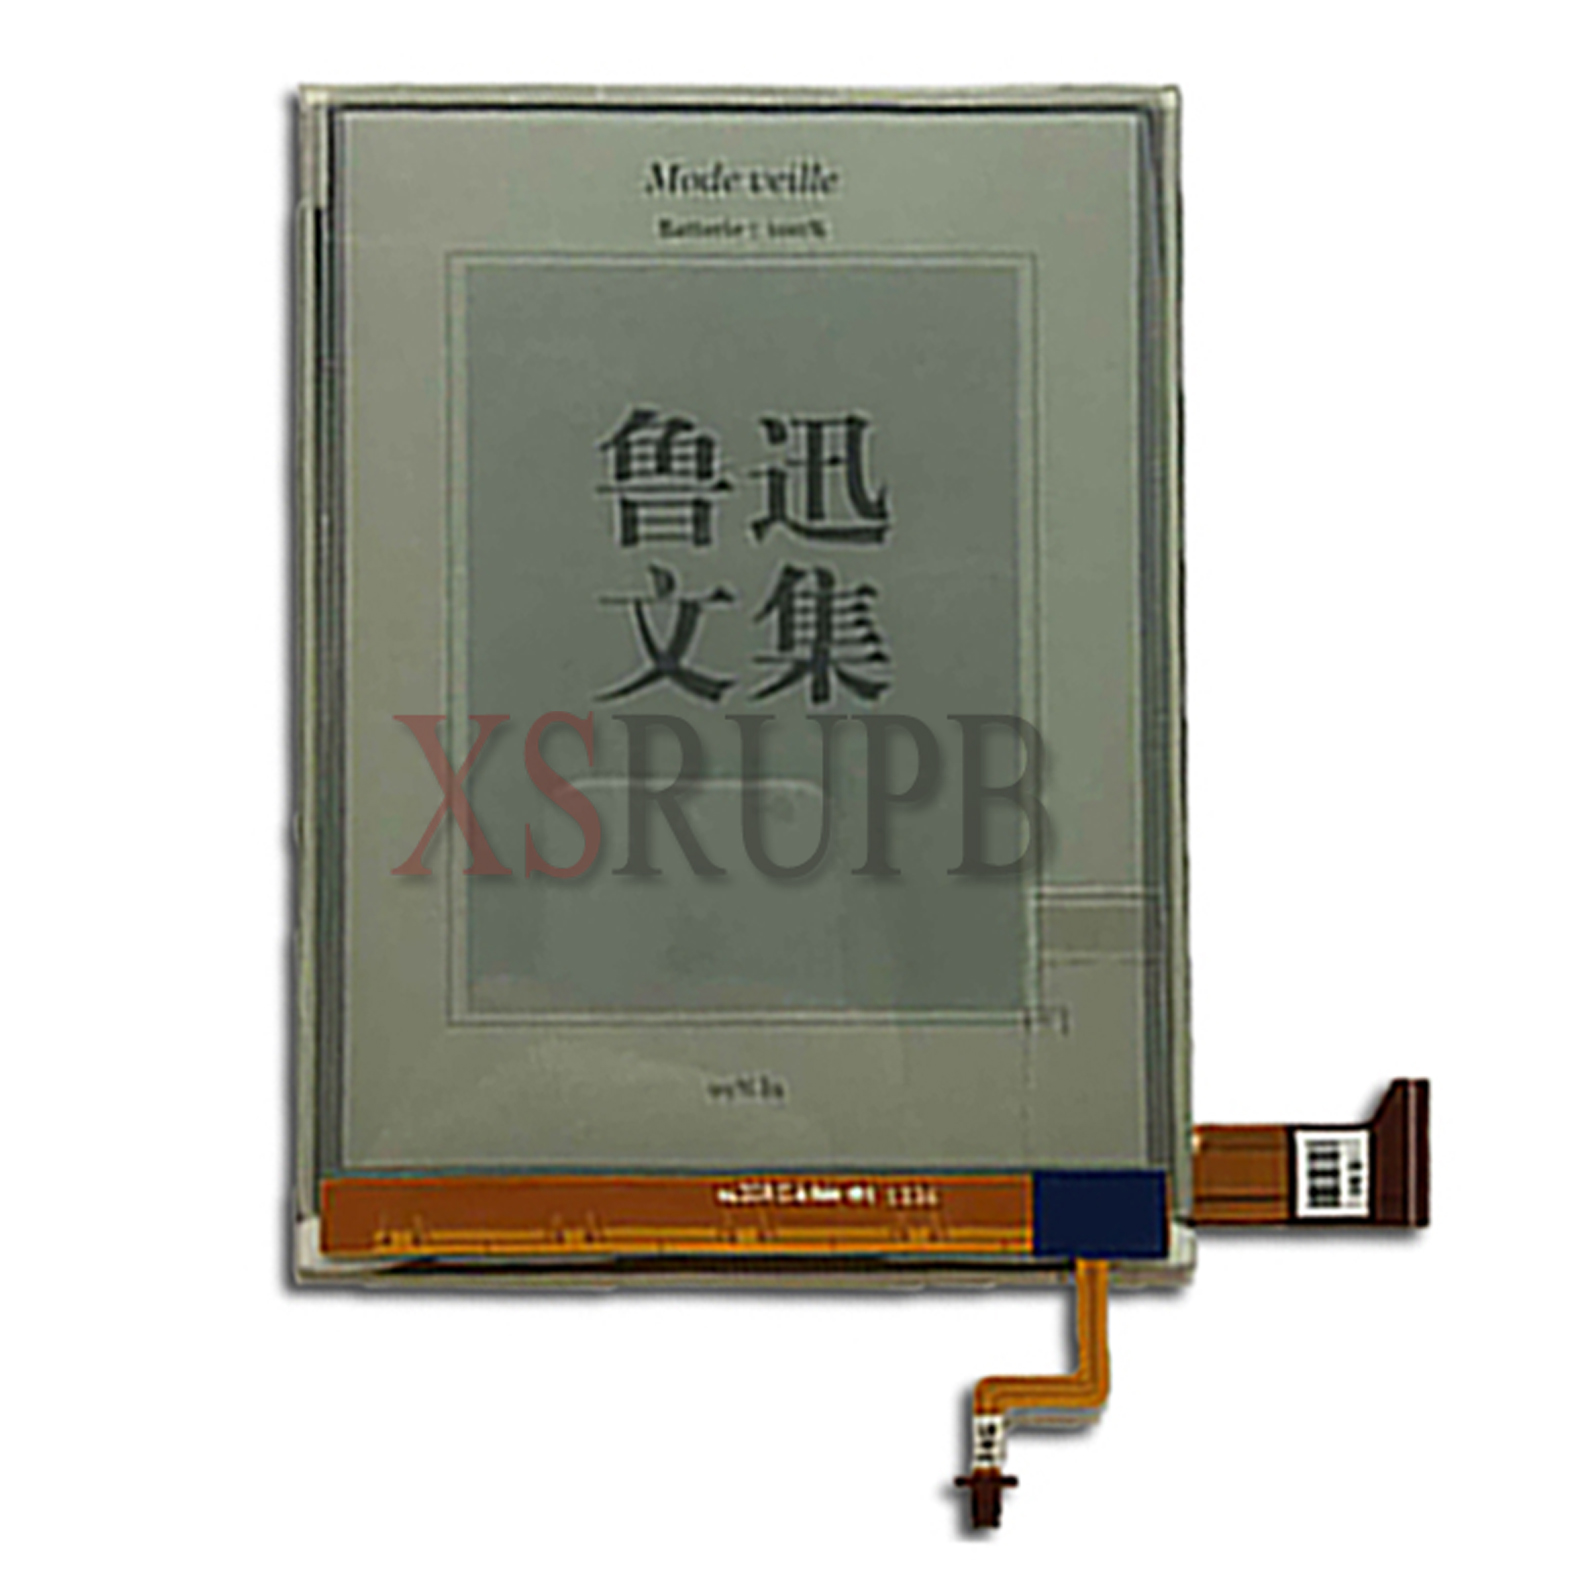 Original 6 1024*758 lcd display for Digma R60G Reader Daily Edition free shipping lc171w03 b4k1 lcd display screens